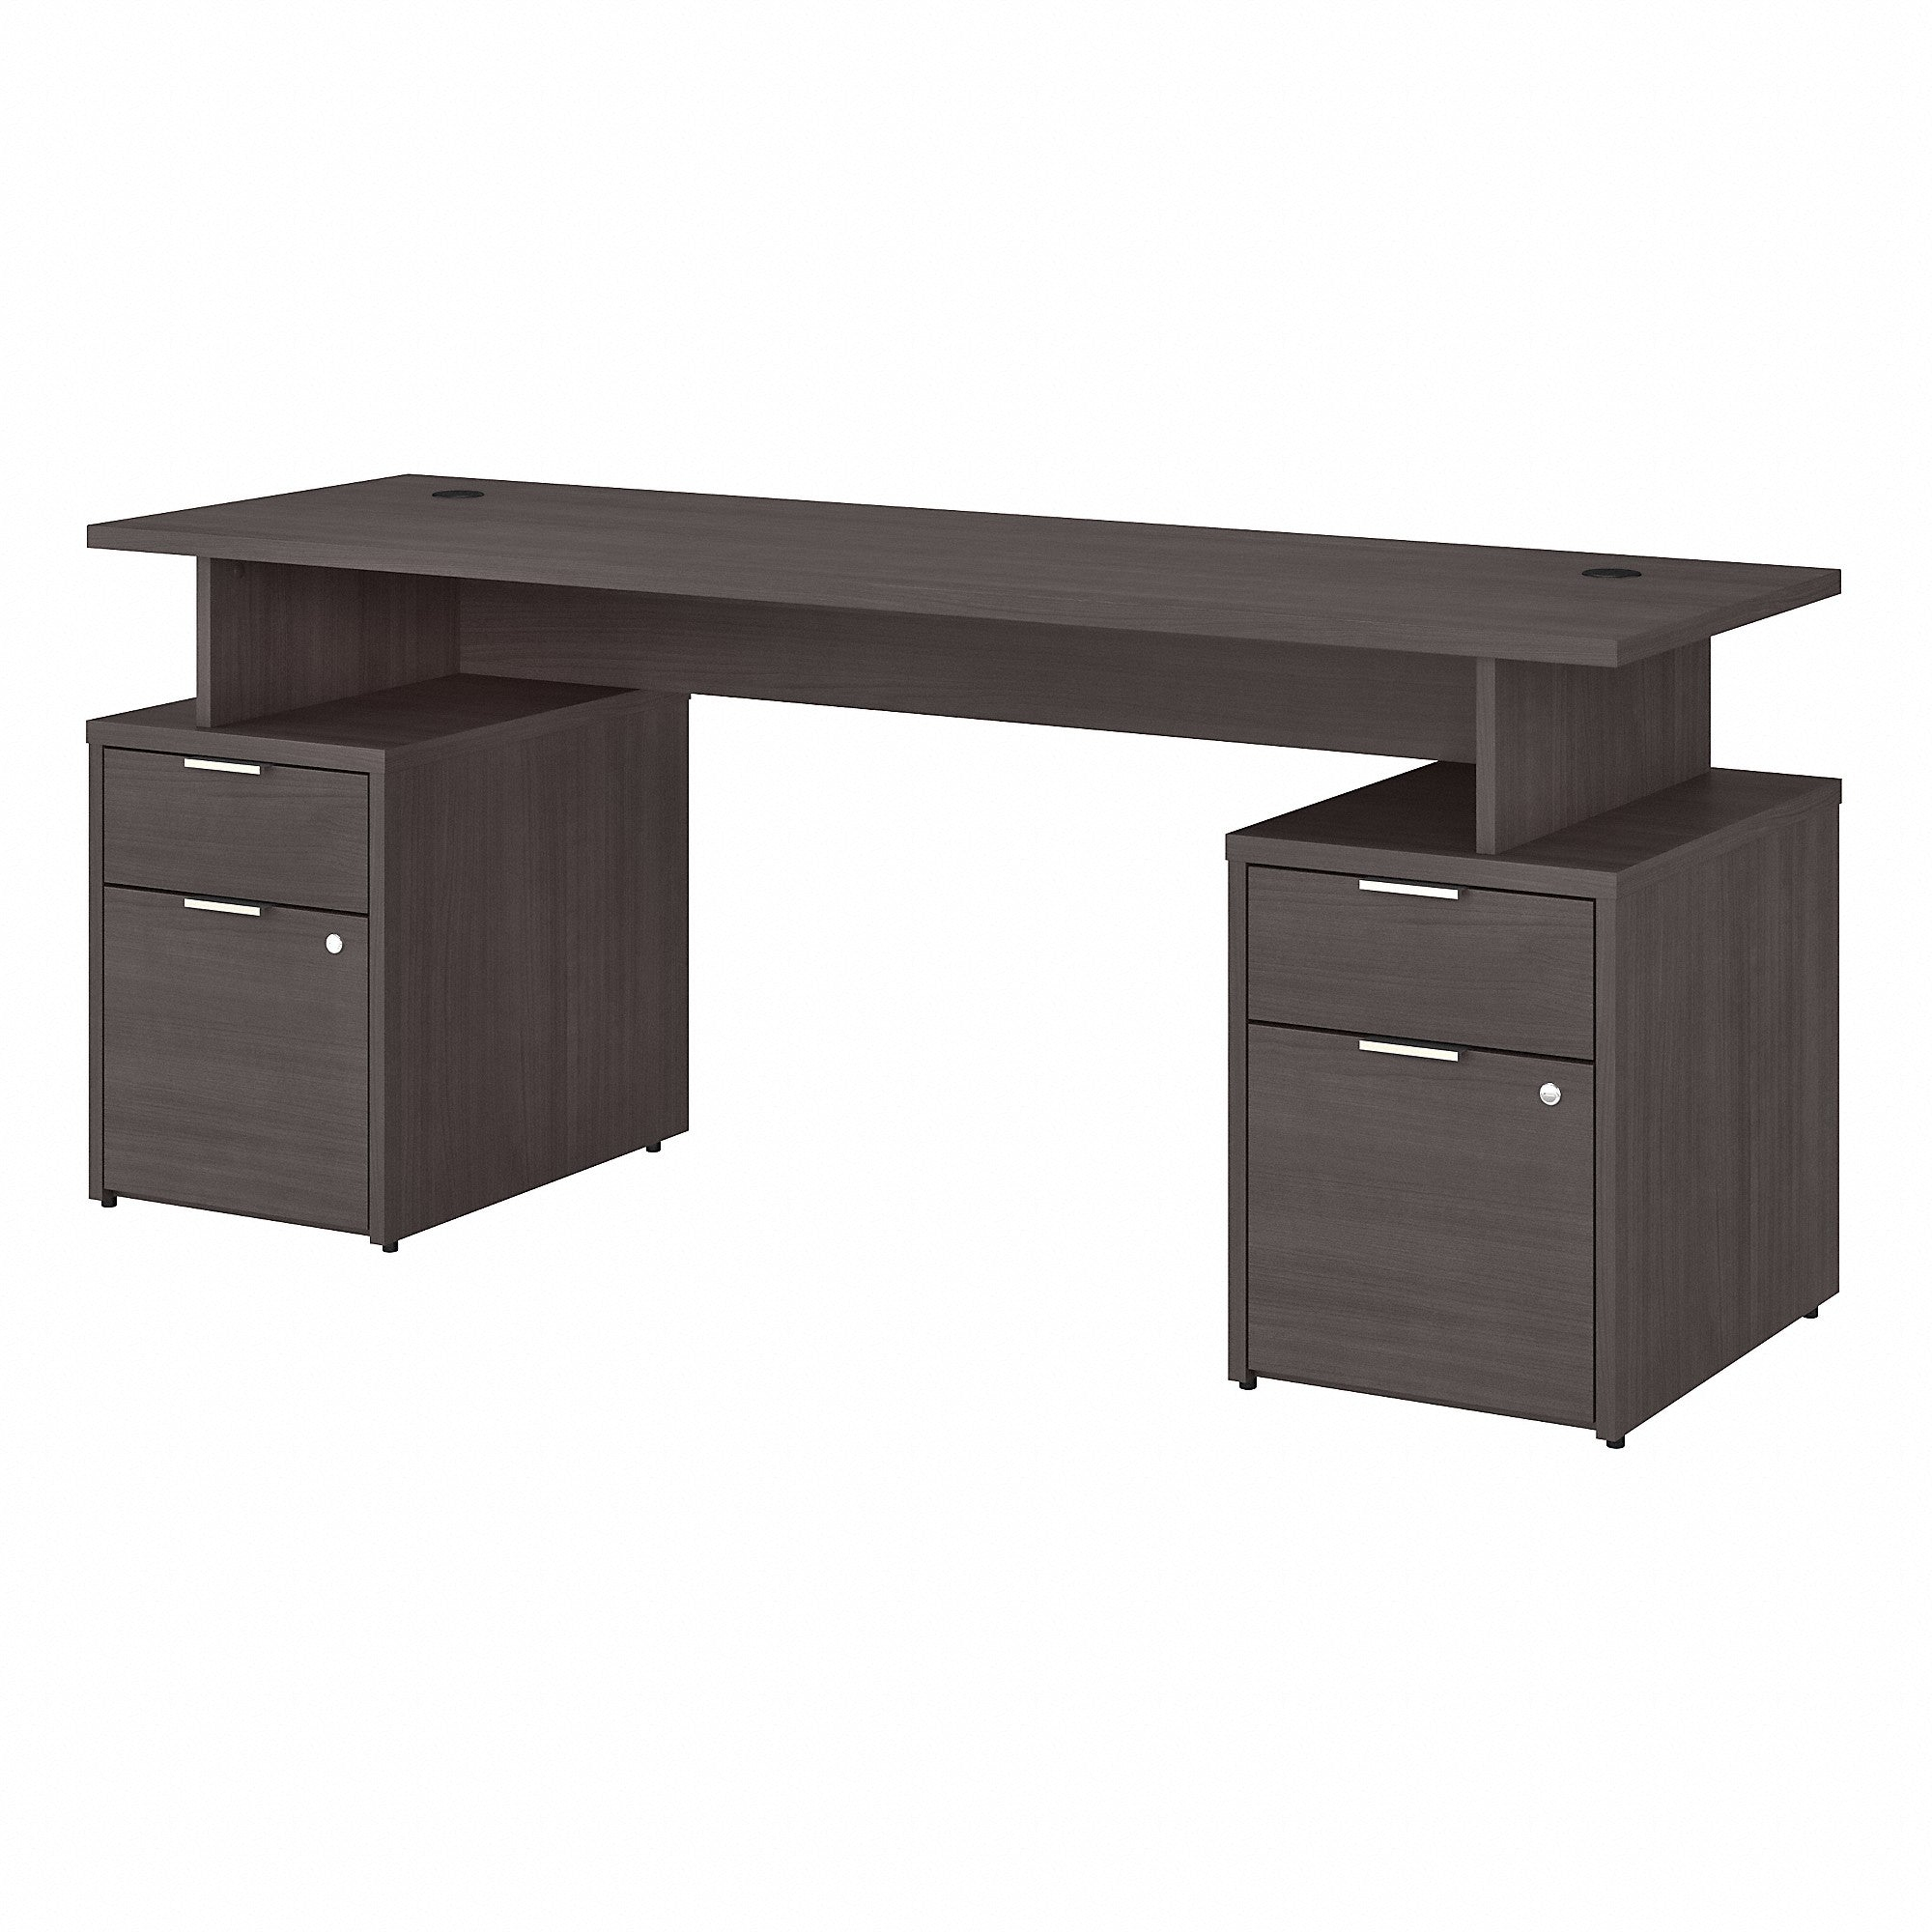 Bush Business Furniture Jamestown 72W Desk with 4 Drawers | Storm Gray